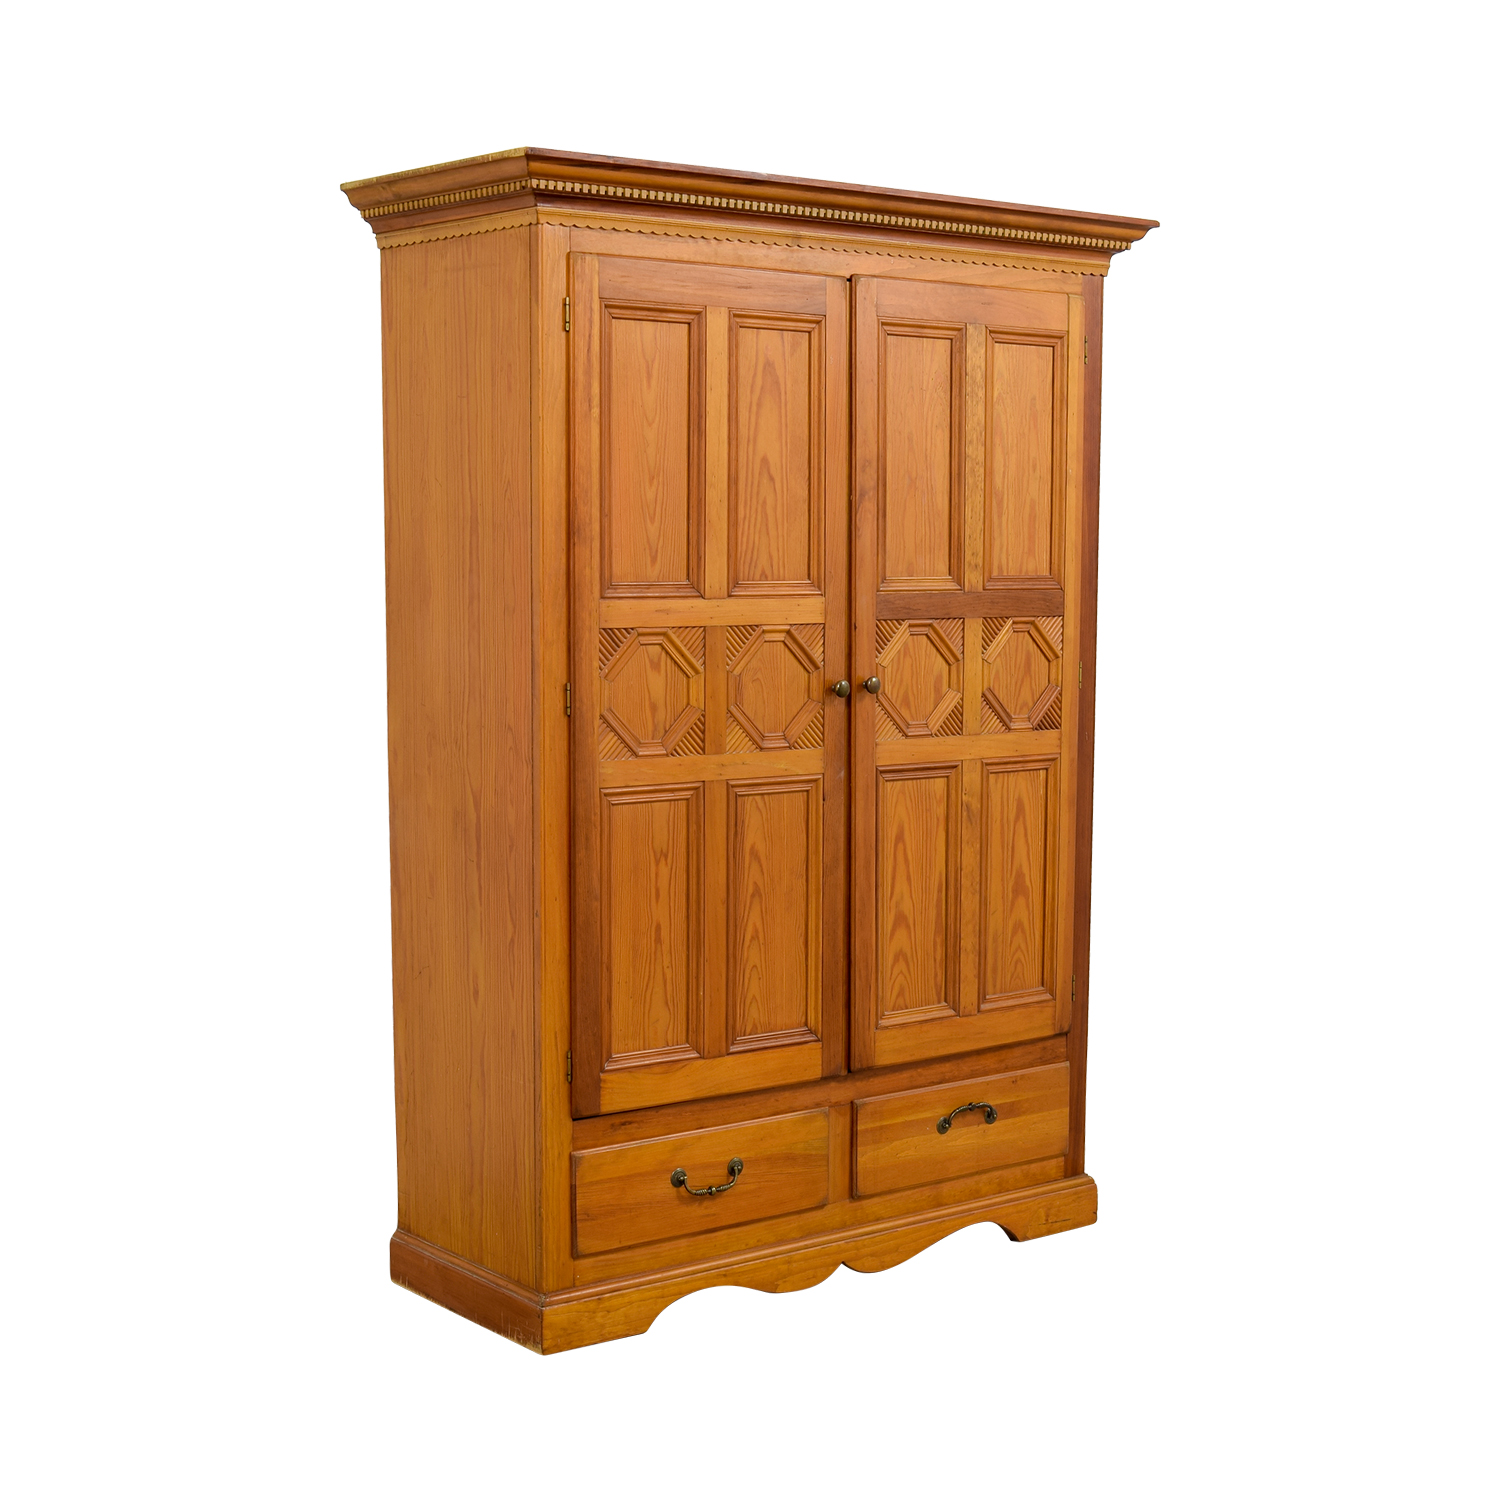 Lexington Weekend Retreat Lexington Weekend Retreat TV Armoire coupon